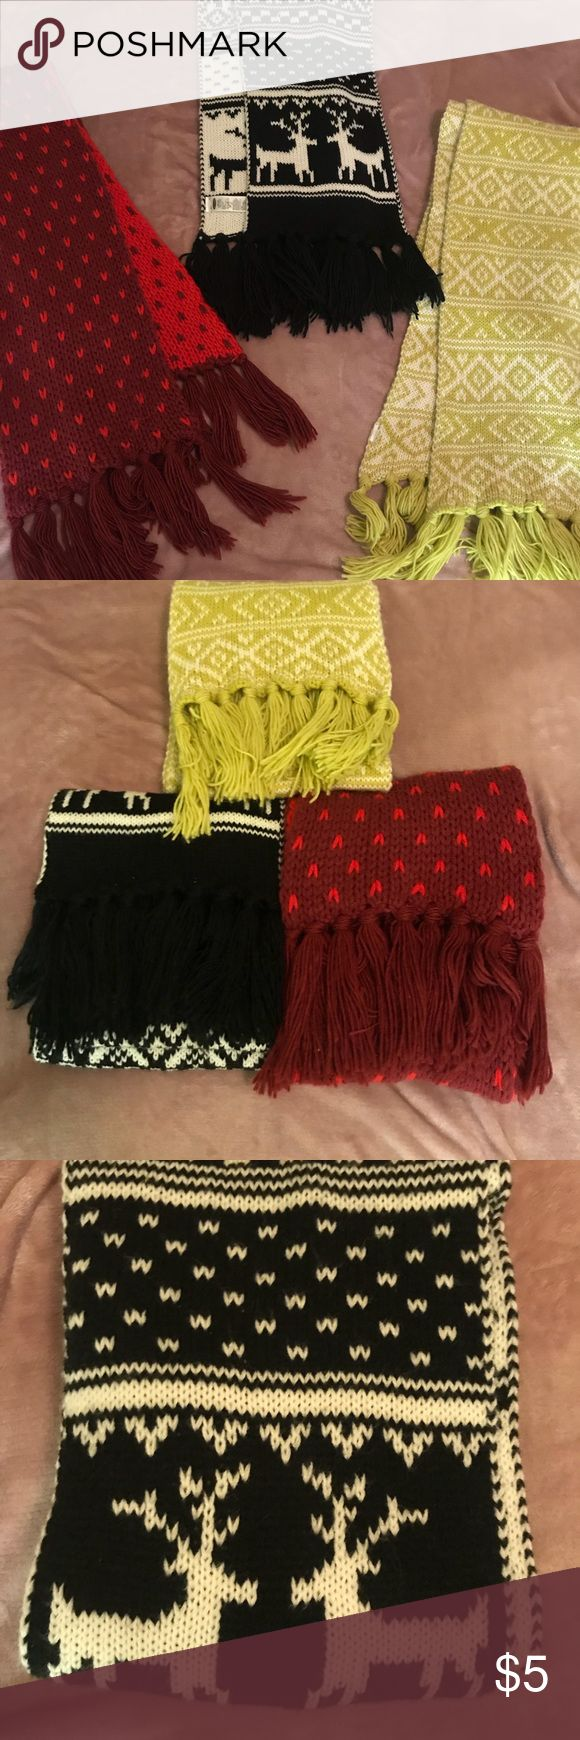 Cozy Old Navy Scarves Very warm and cozy scarves, they are also long and easy to manipulate for a quick outfit touch up ! Please let me know if you all like the scarves. Thank you Babes and don't forget to shop around and like also comment 💋 Old Navy Accessories Scarves & Wraps